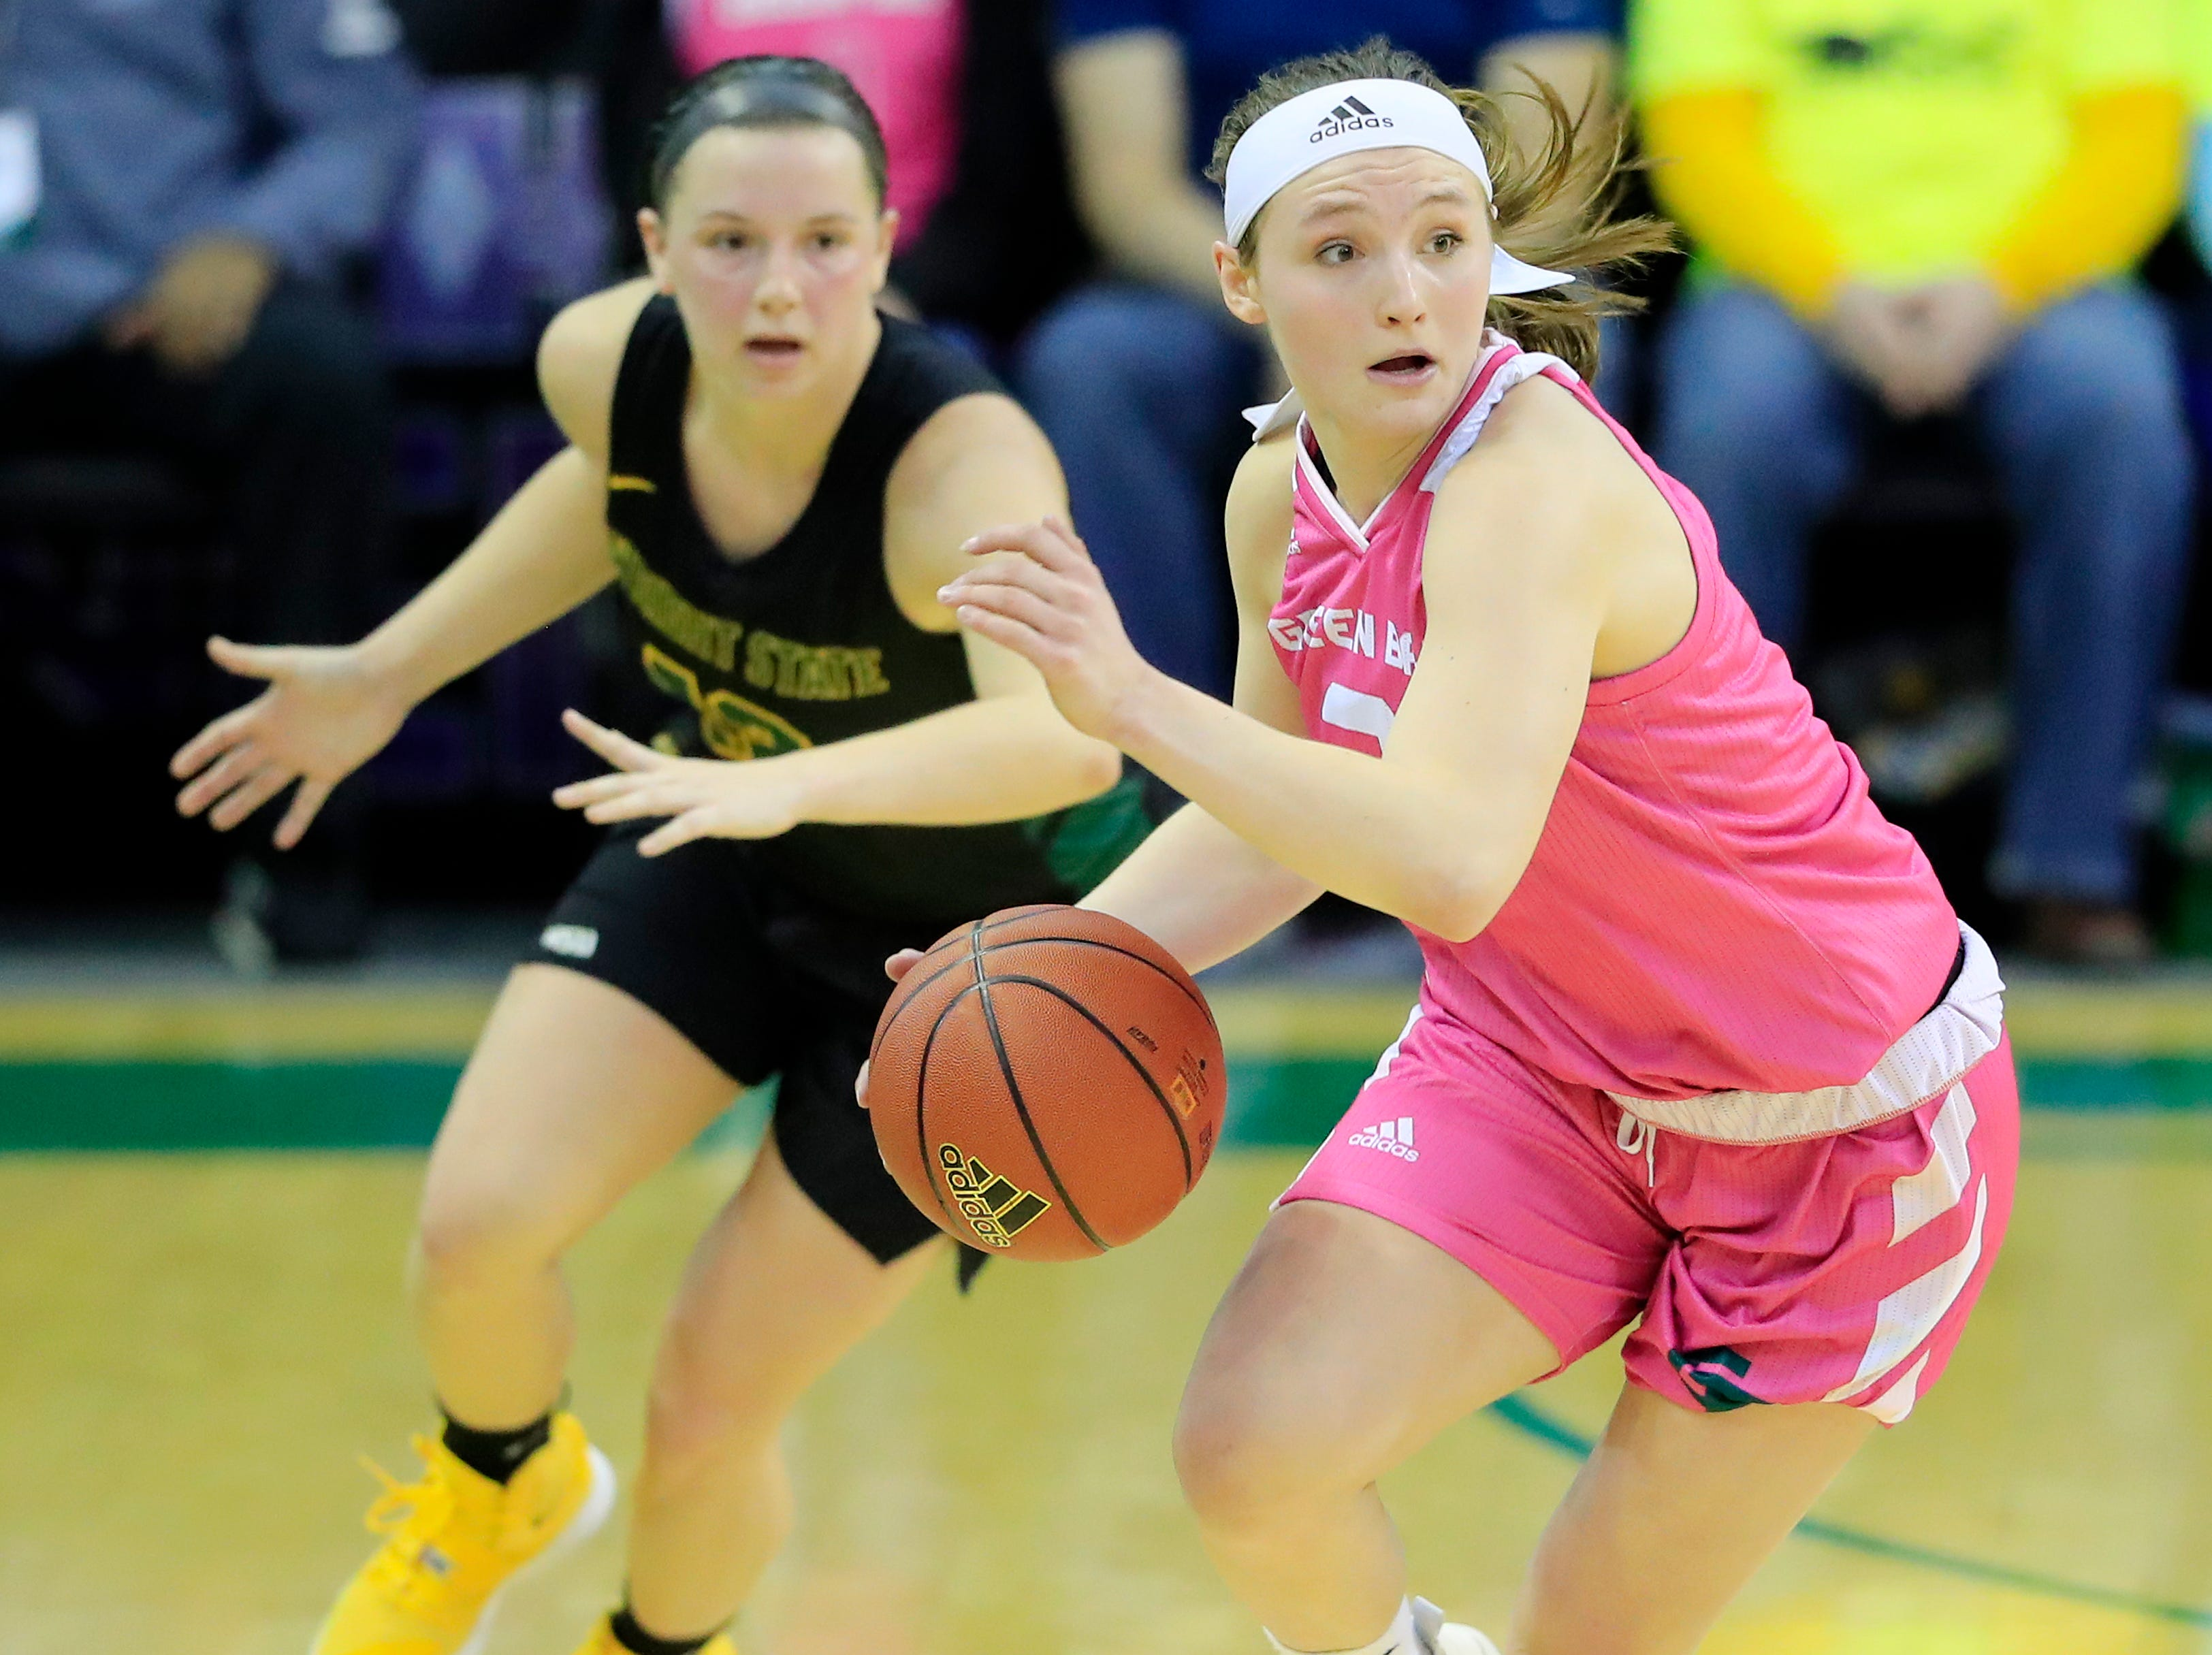 Green Bay Phoenix guard Frankie Wurtz (3) gets a steal against the Wright State Raiders in a Horizon League women's basketball game at the Kress Center on Saturday, February 9, 2019 in Green Bay, Wis.